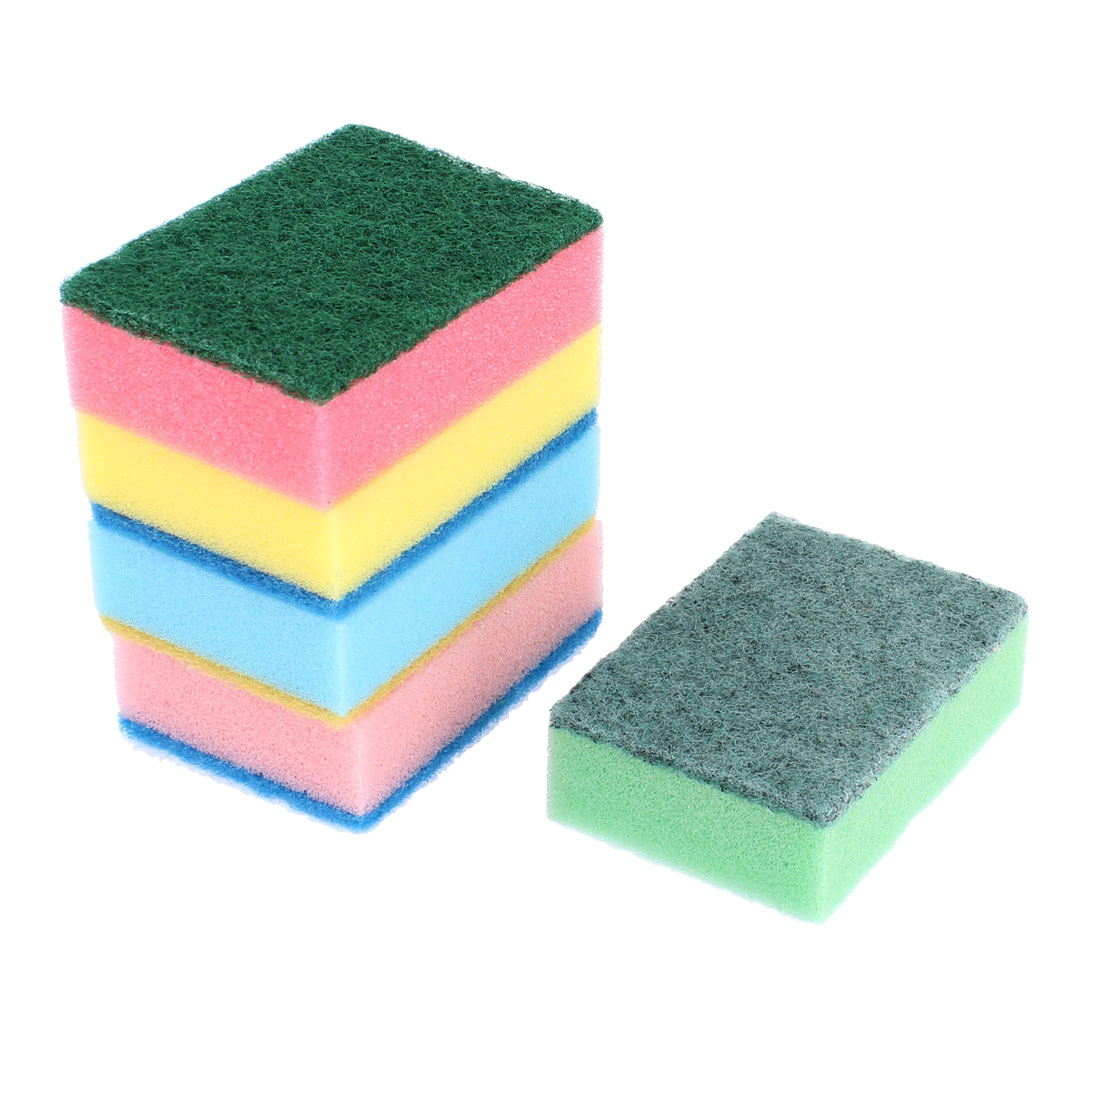 Household Sponge Bowl Dish Wash Cleaning Pad Assorted Color 5 Pcs